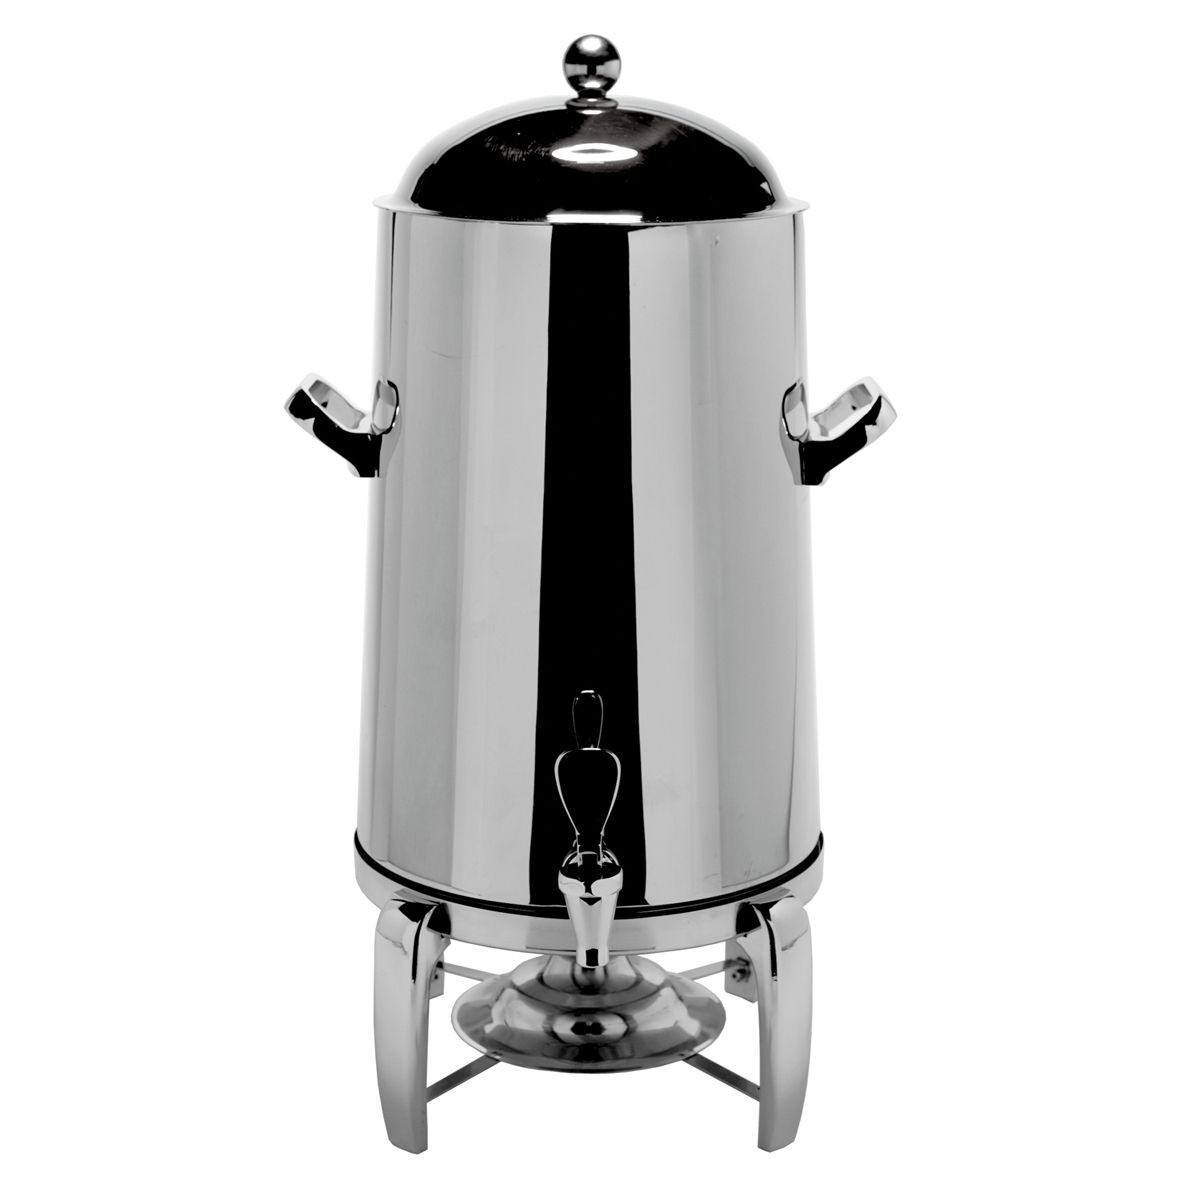 Service Ideas URN50VPS Polished Steel Flame Free Thermo Beverage Urn 5 Gallon